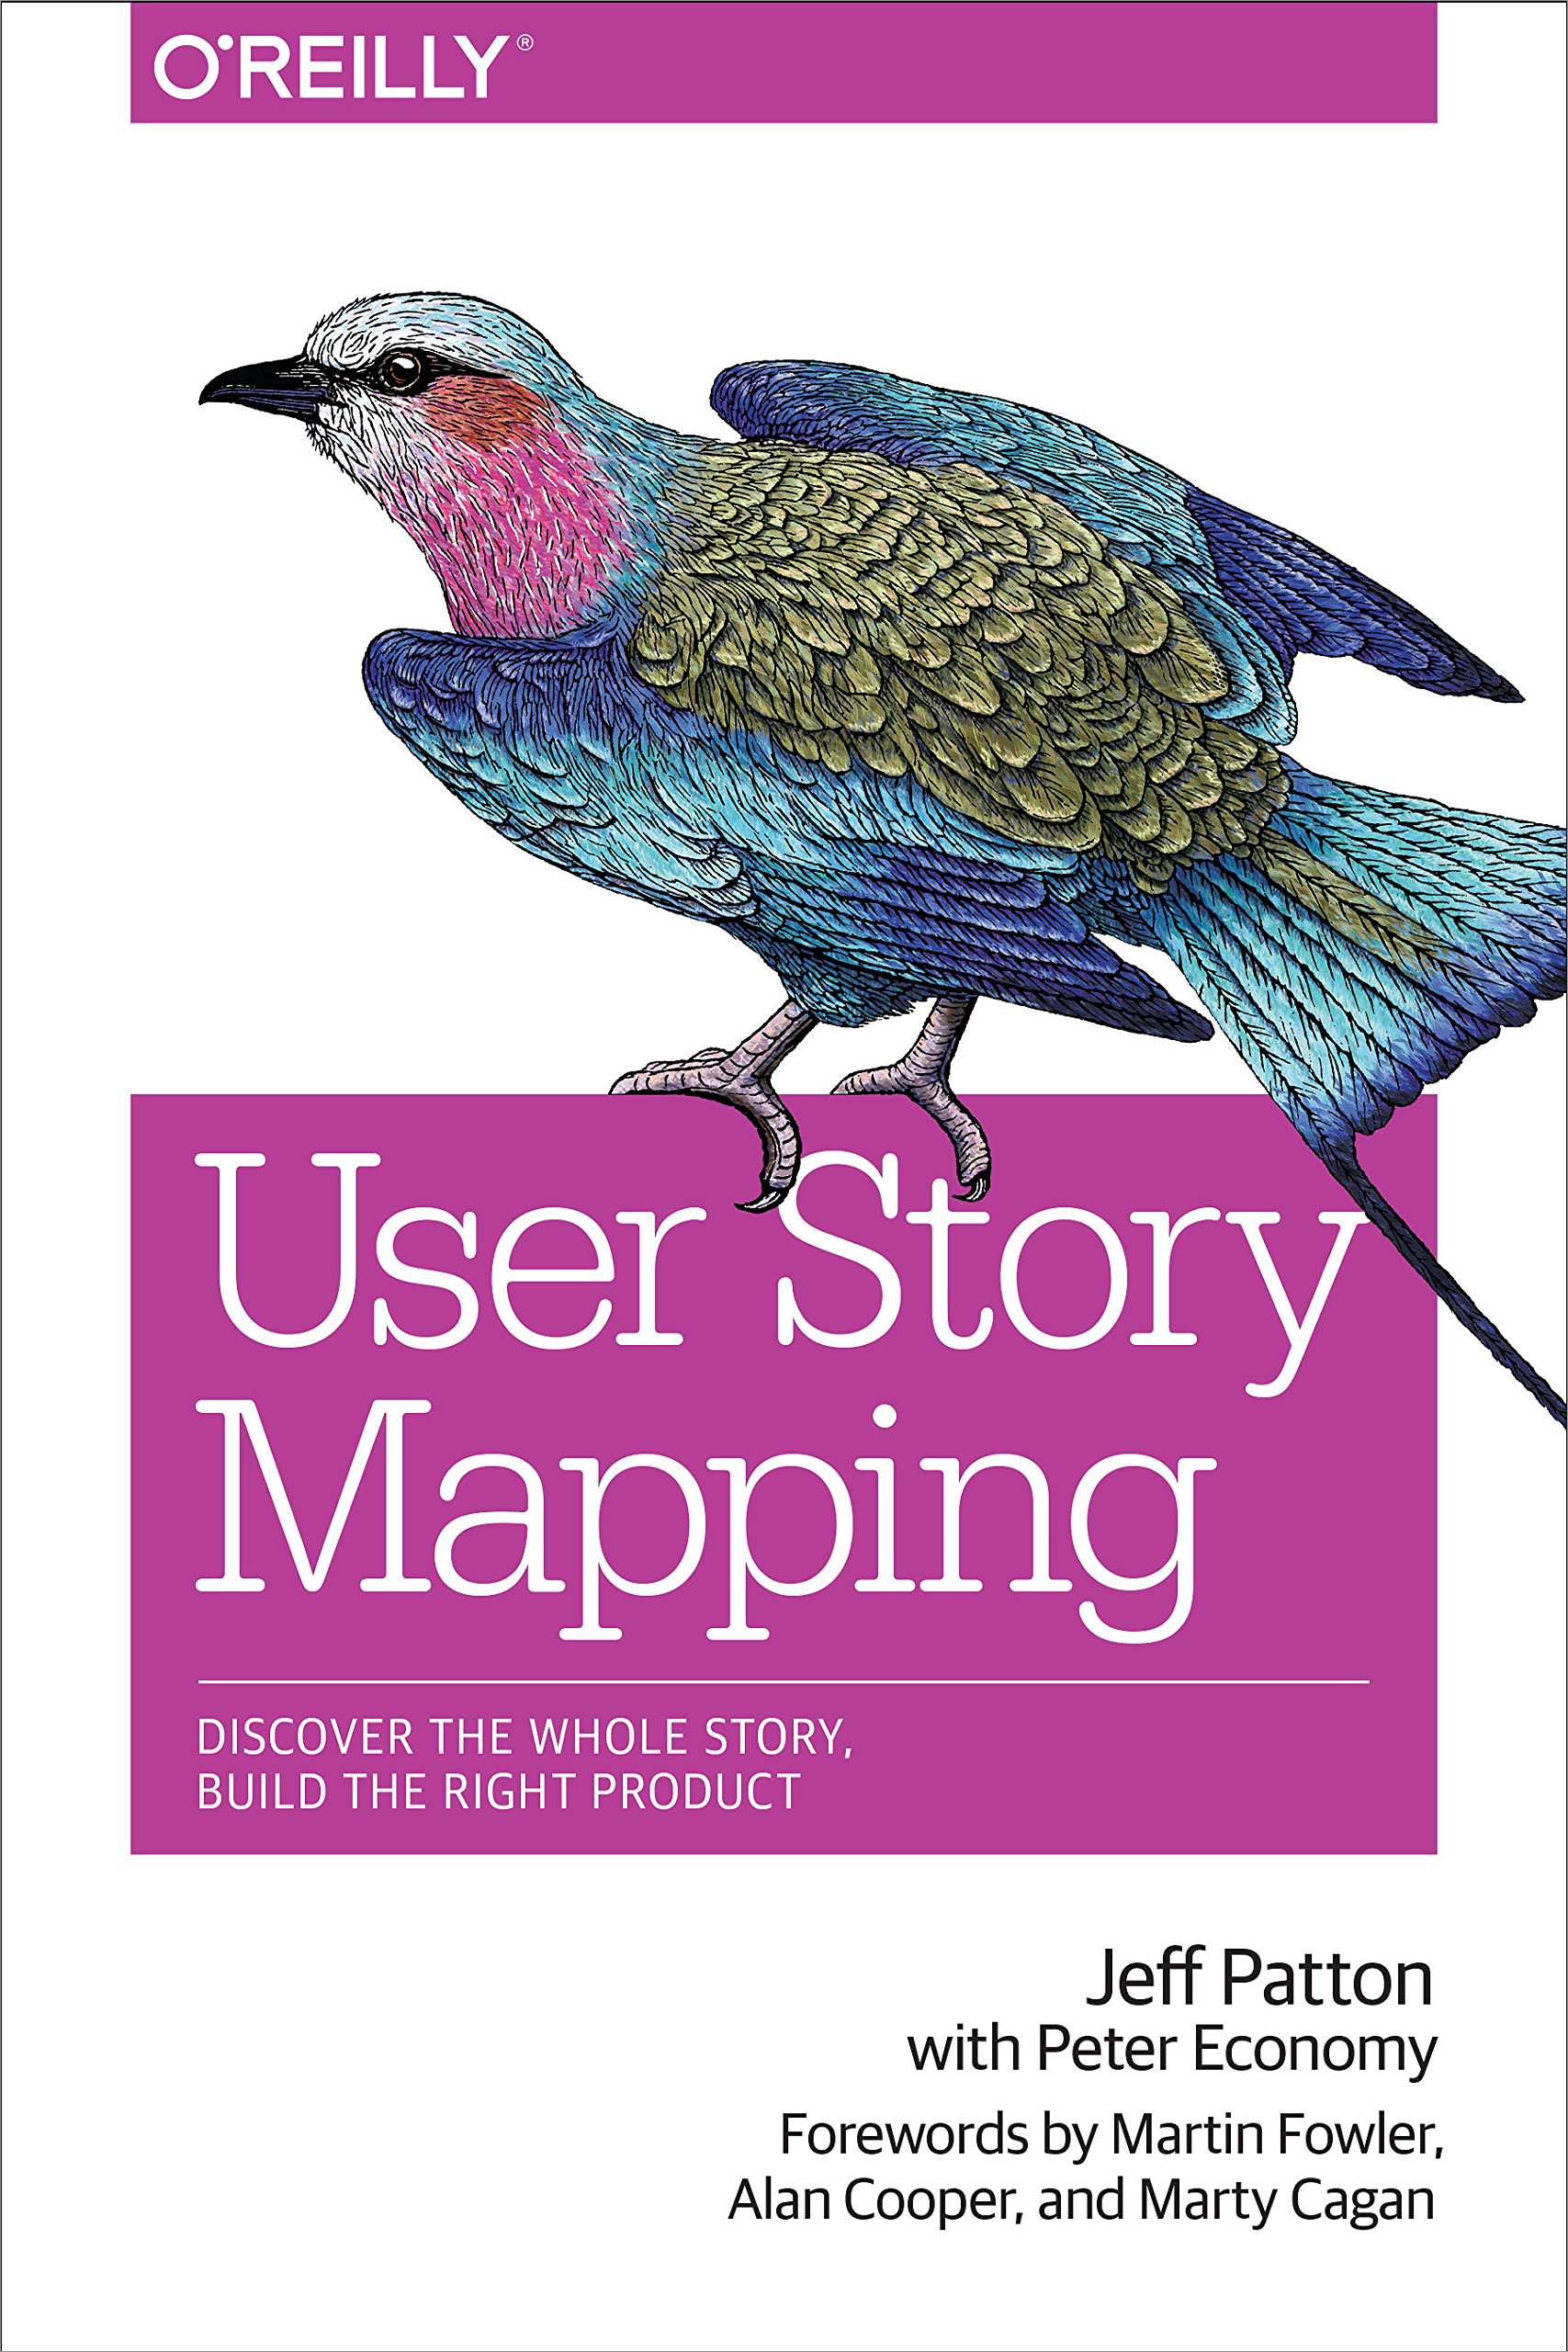 userstory-mapping